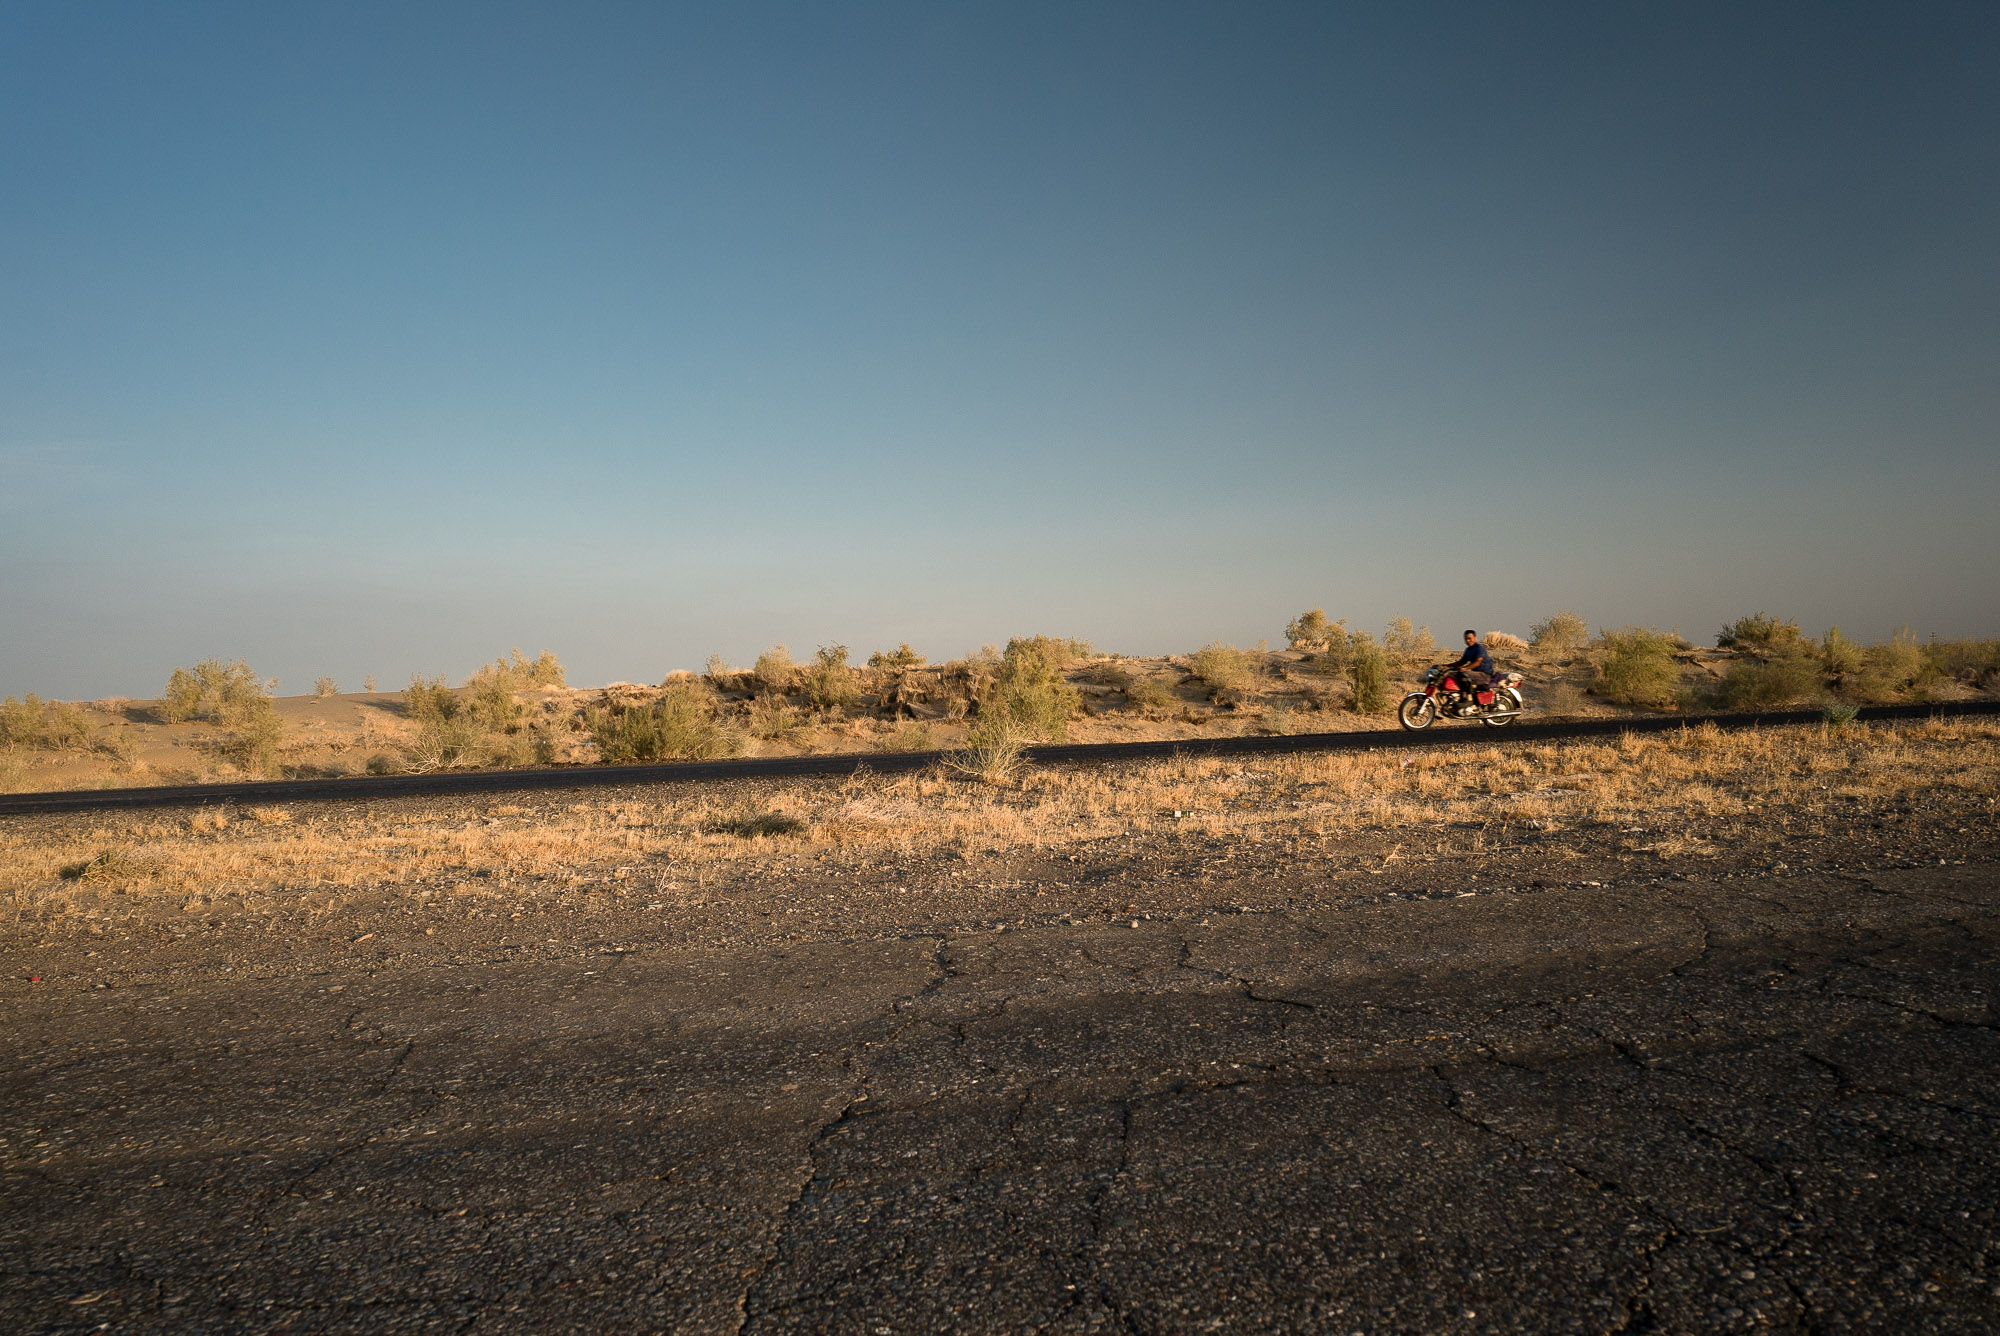 motorcycle on a desert road